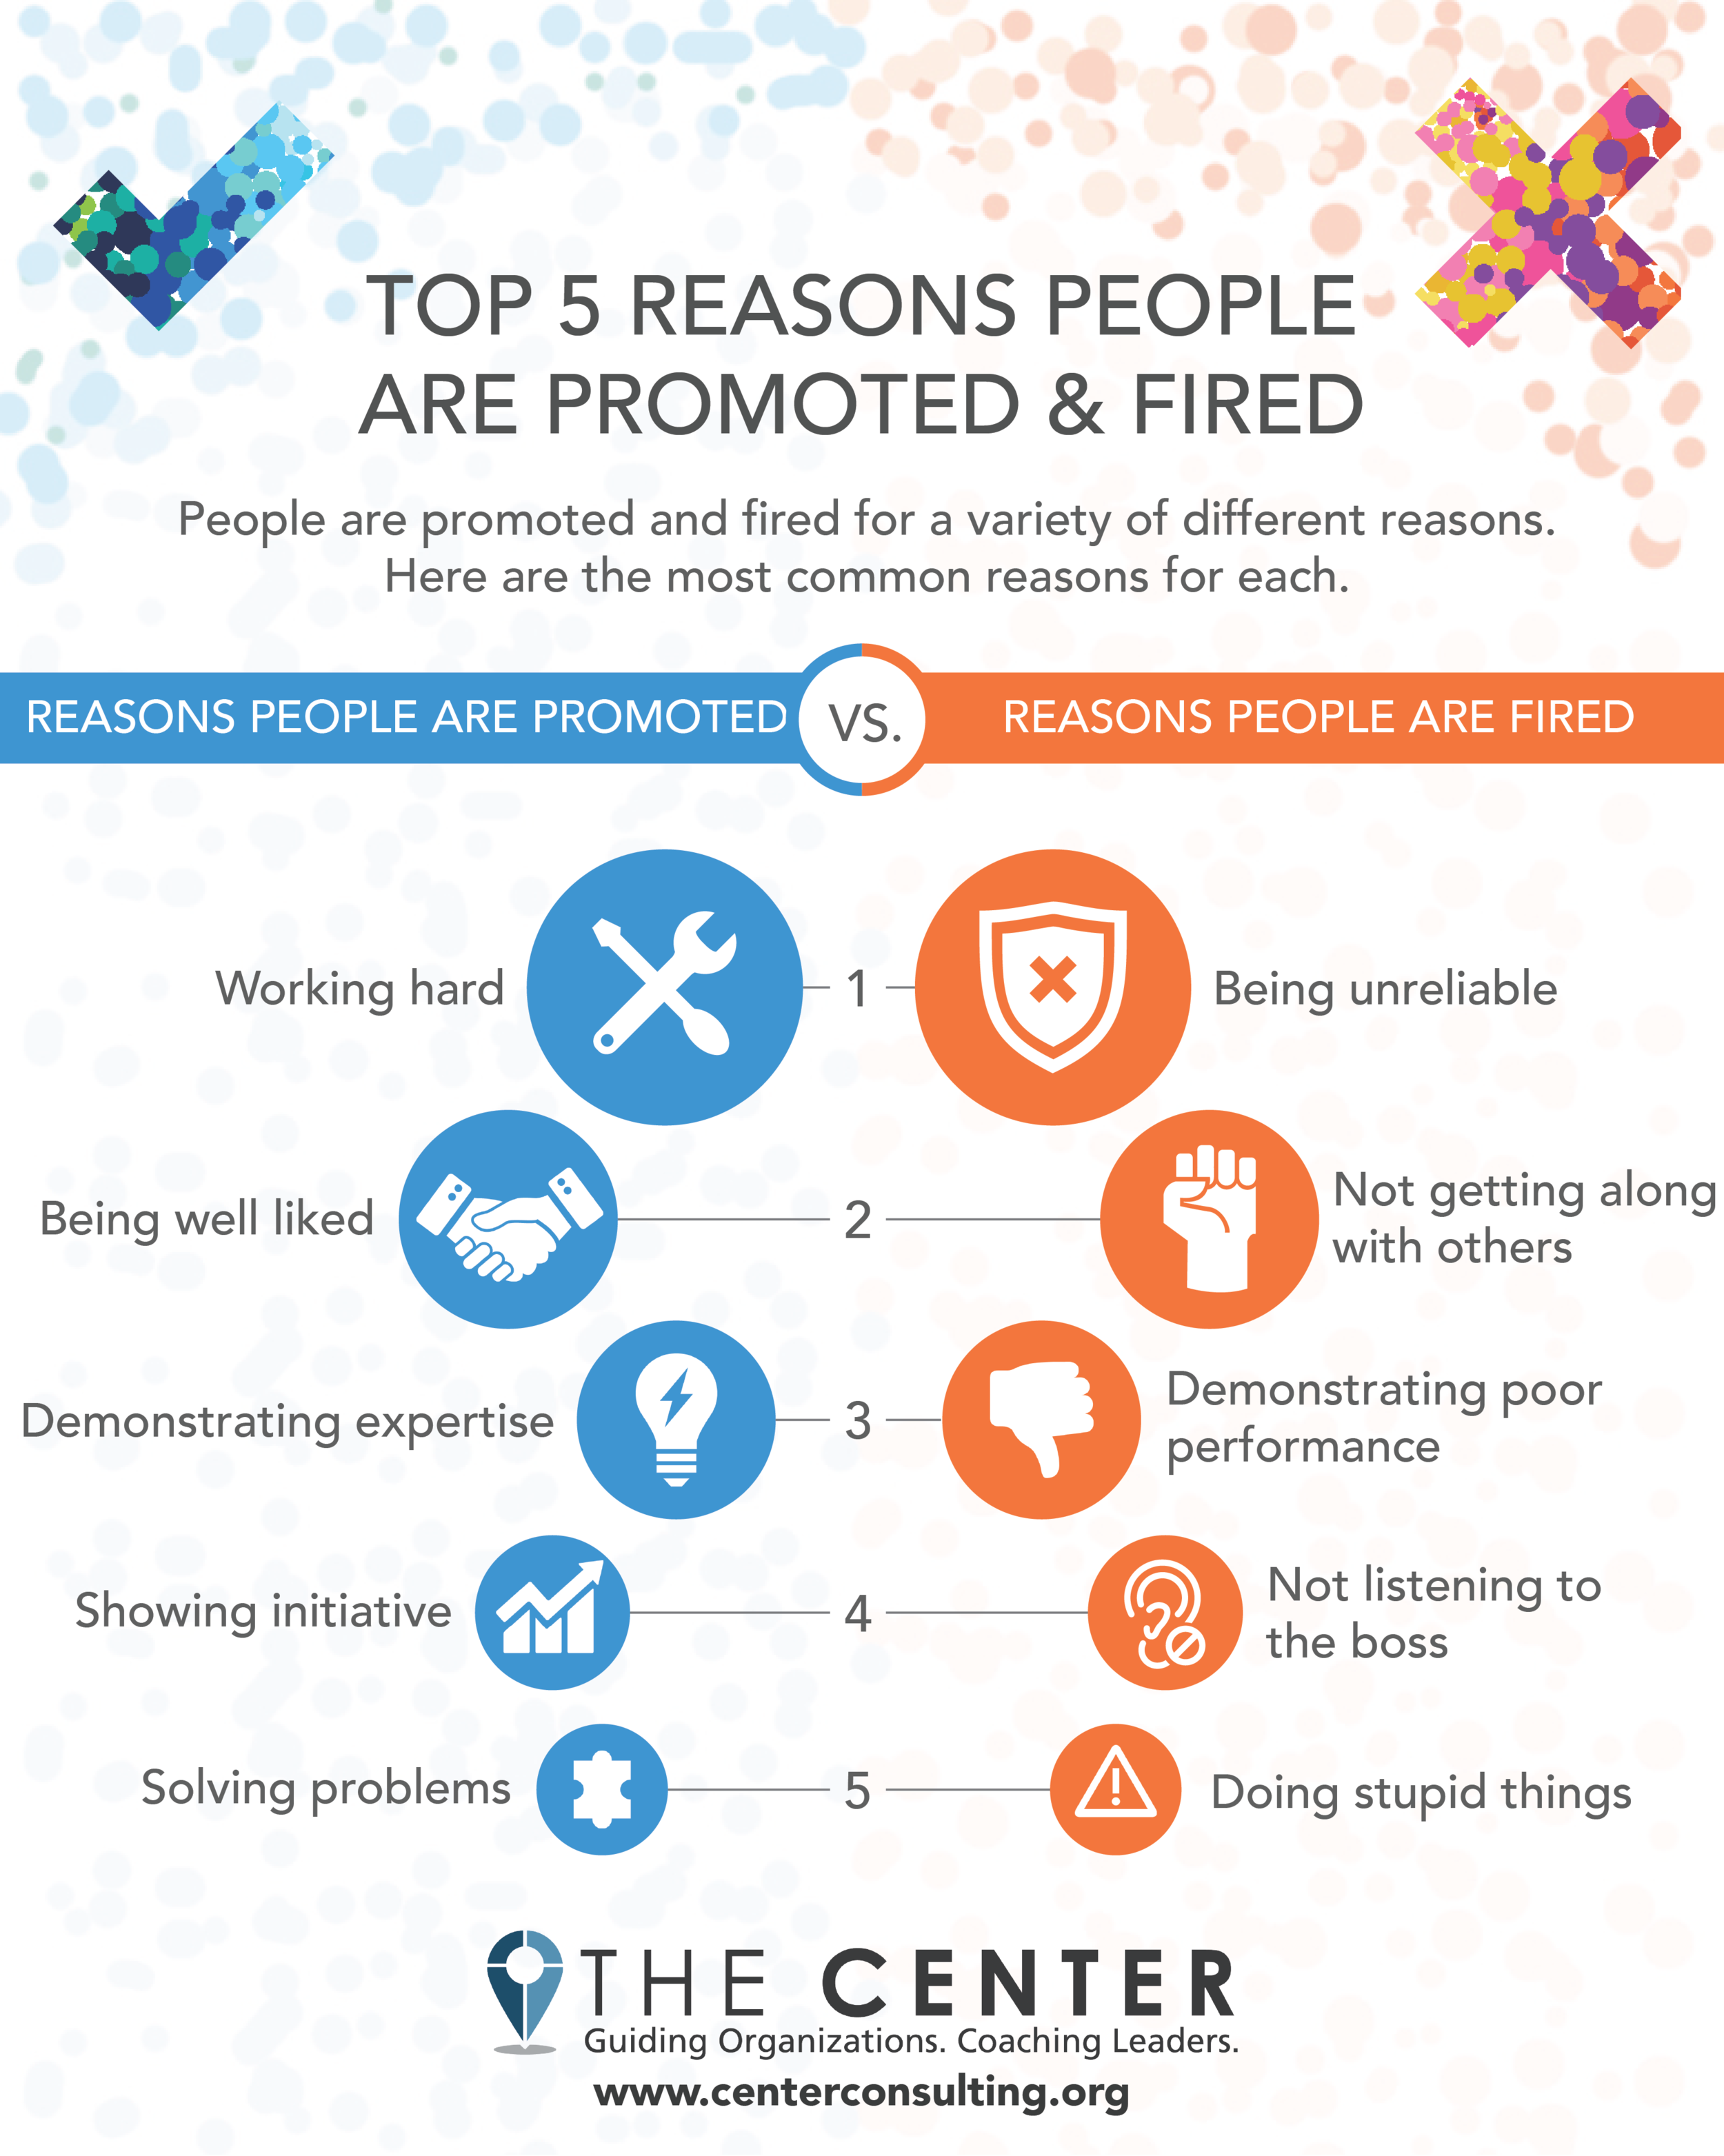 Top 5 Reasons People Are Promoted & Fired